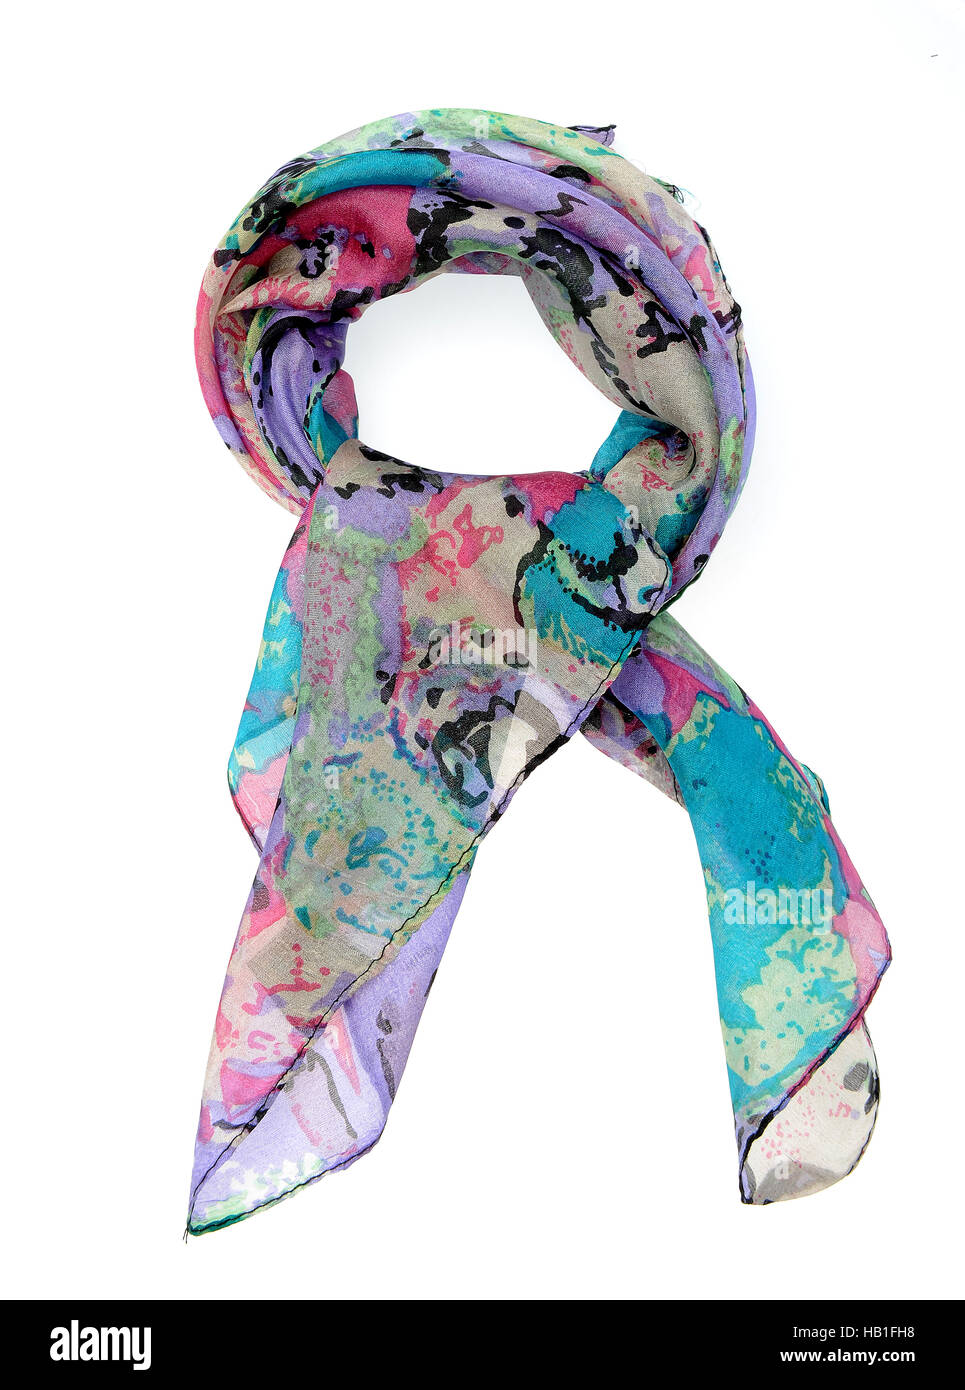 5ccefec47 Fashion accessories, Silk scarf, isolated on white background - Stock Image